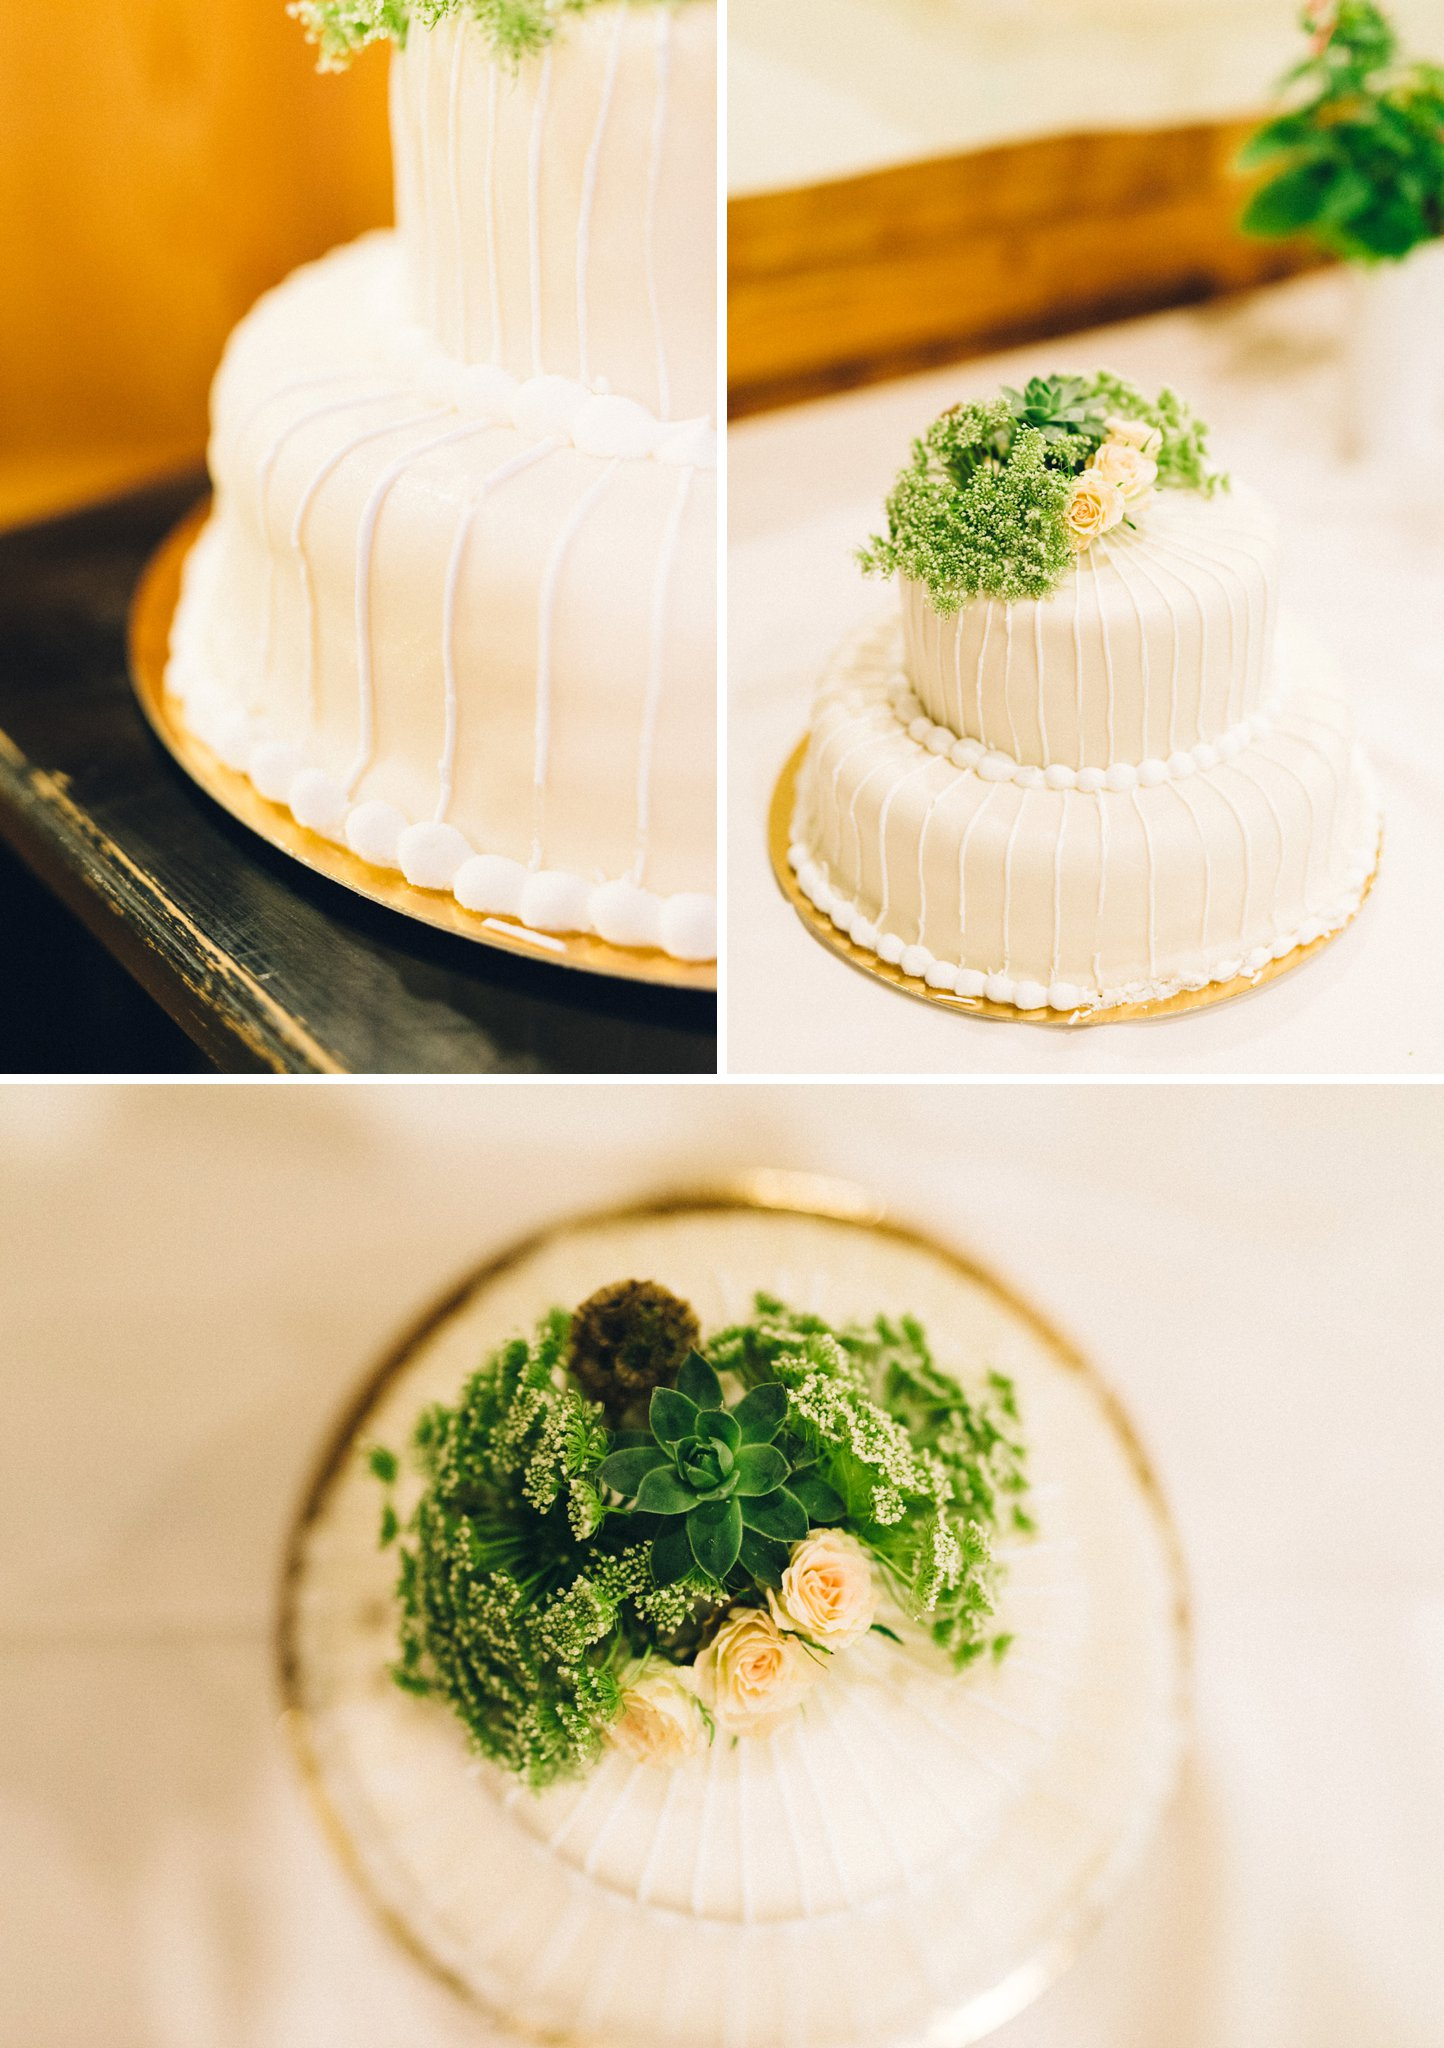 05-wedding-cake-home-made-layer-cake